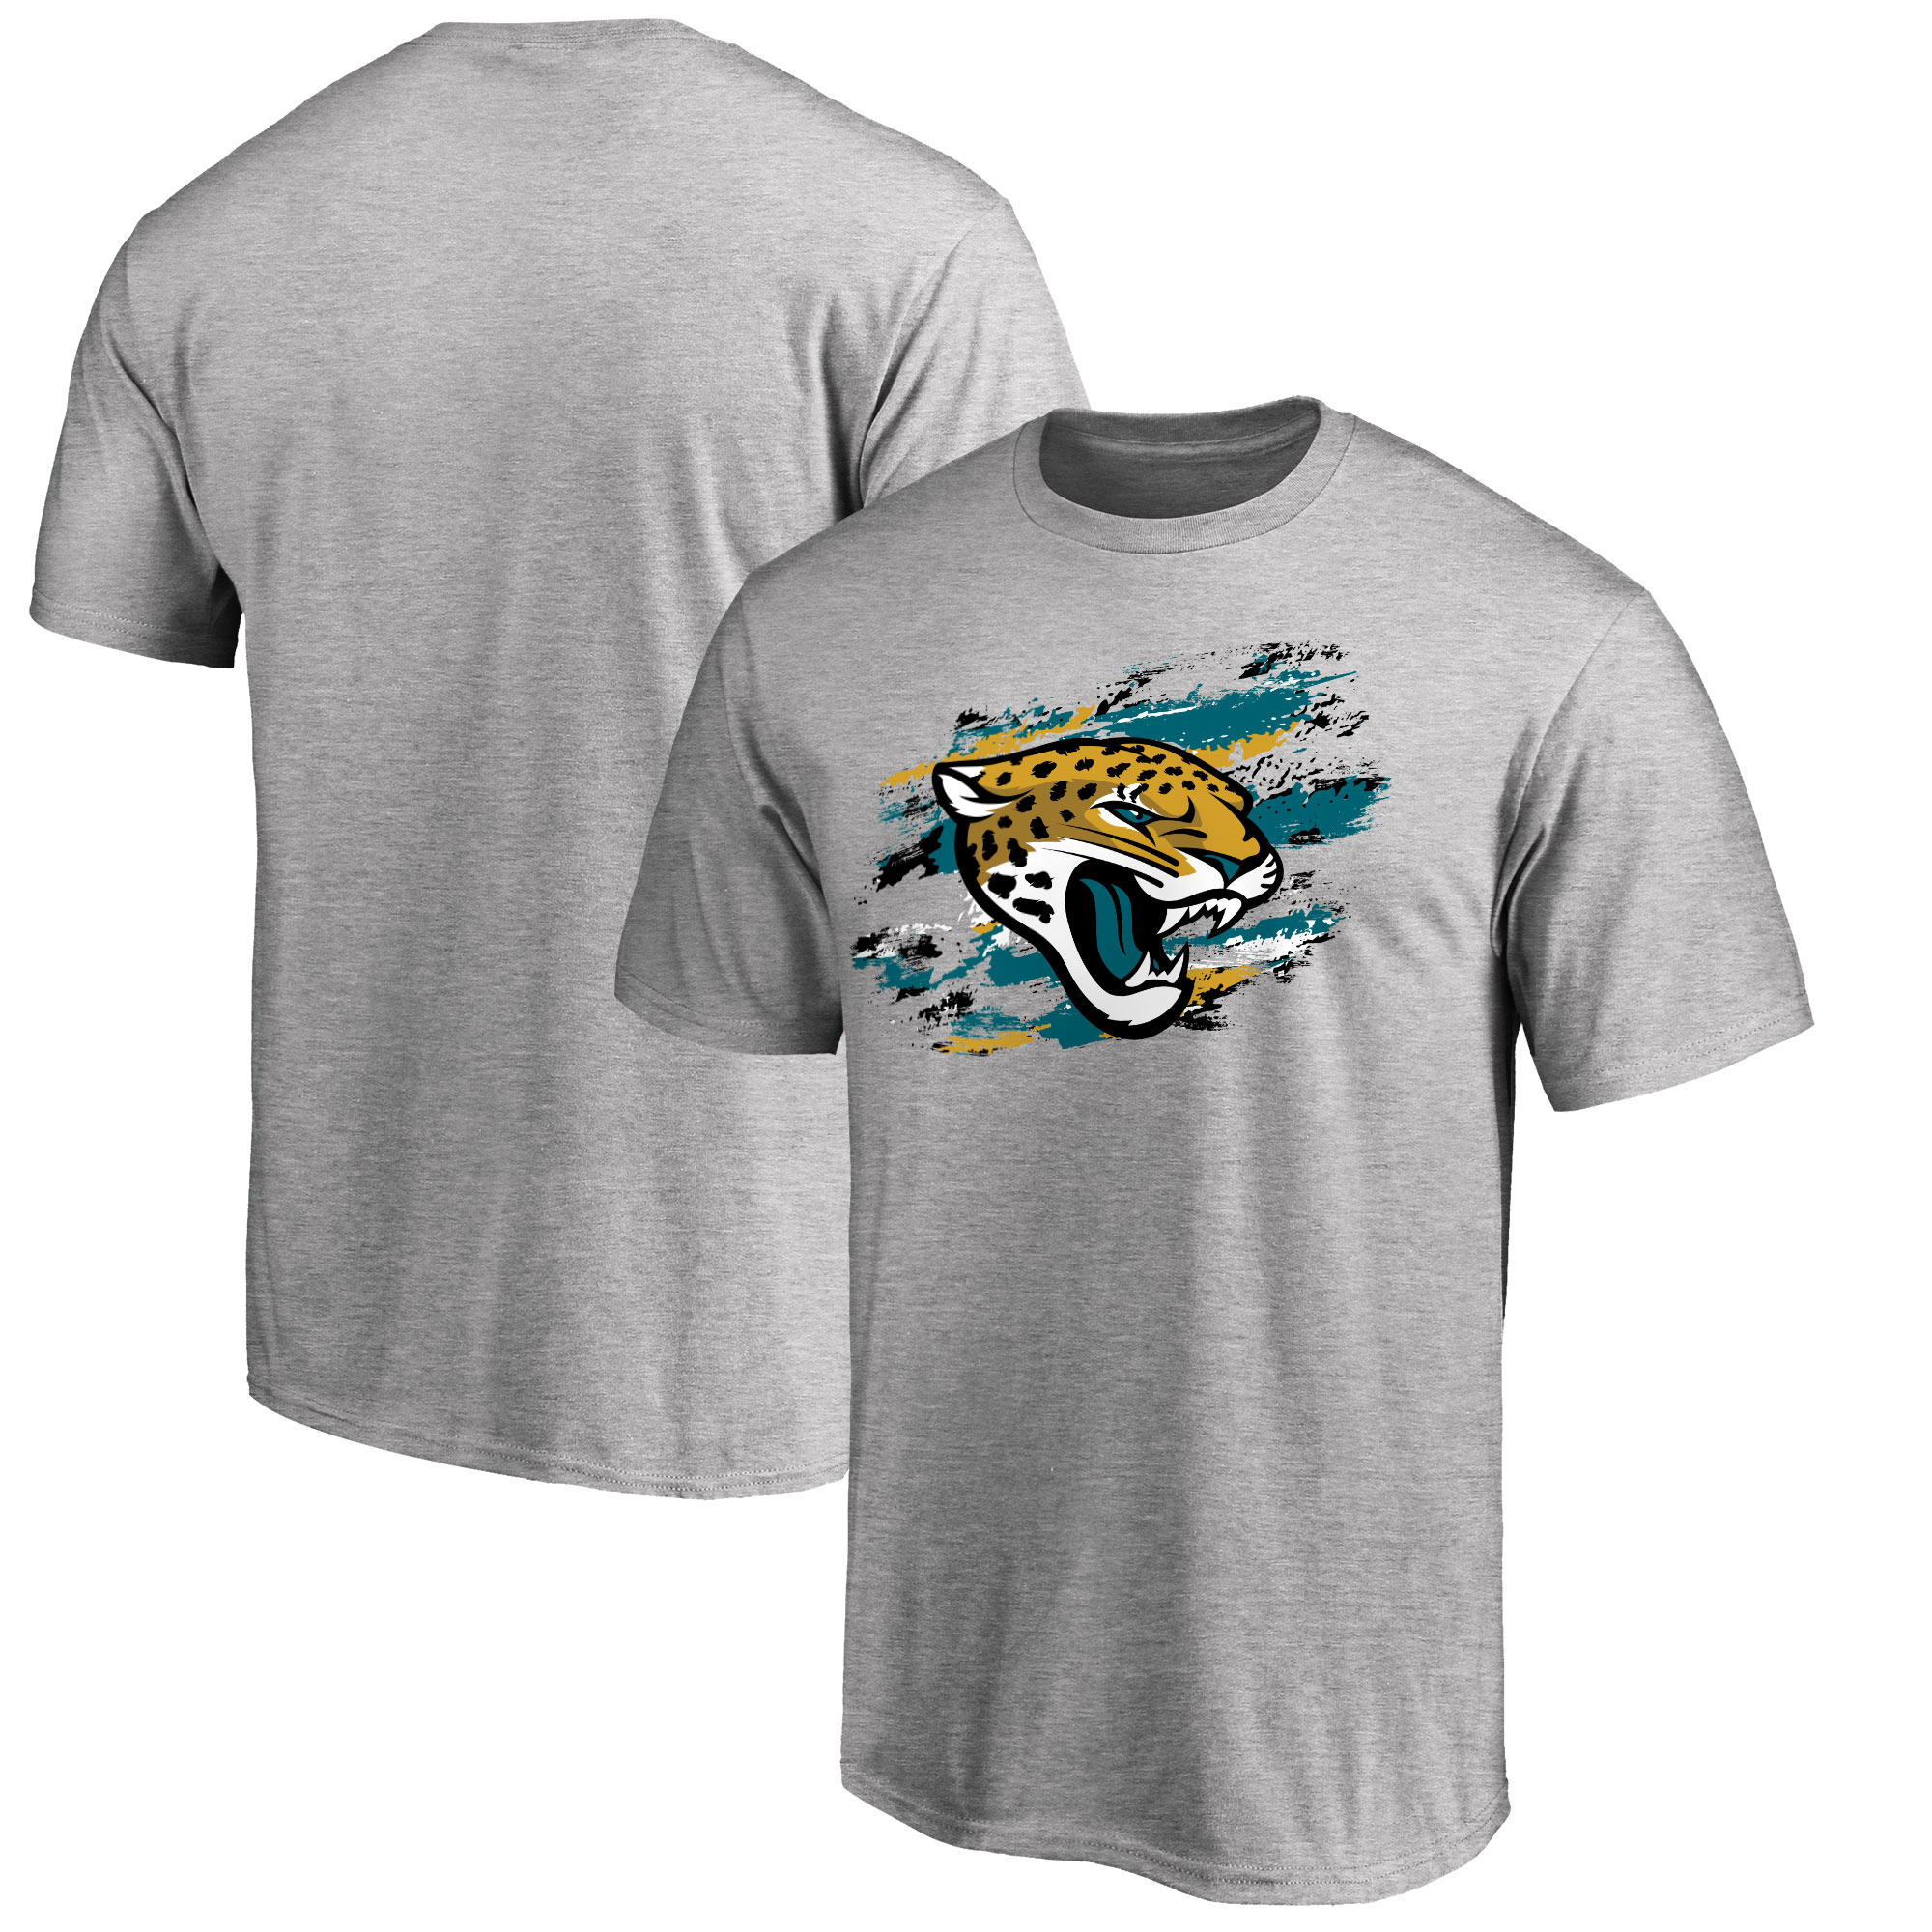 Jacksonville Jaguars NFL Pro Line True Color T-Shirt - Heathered Gray